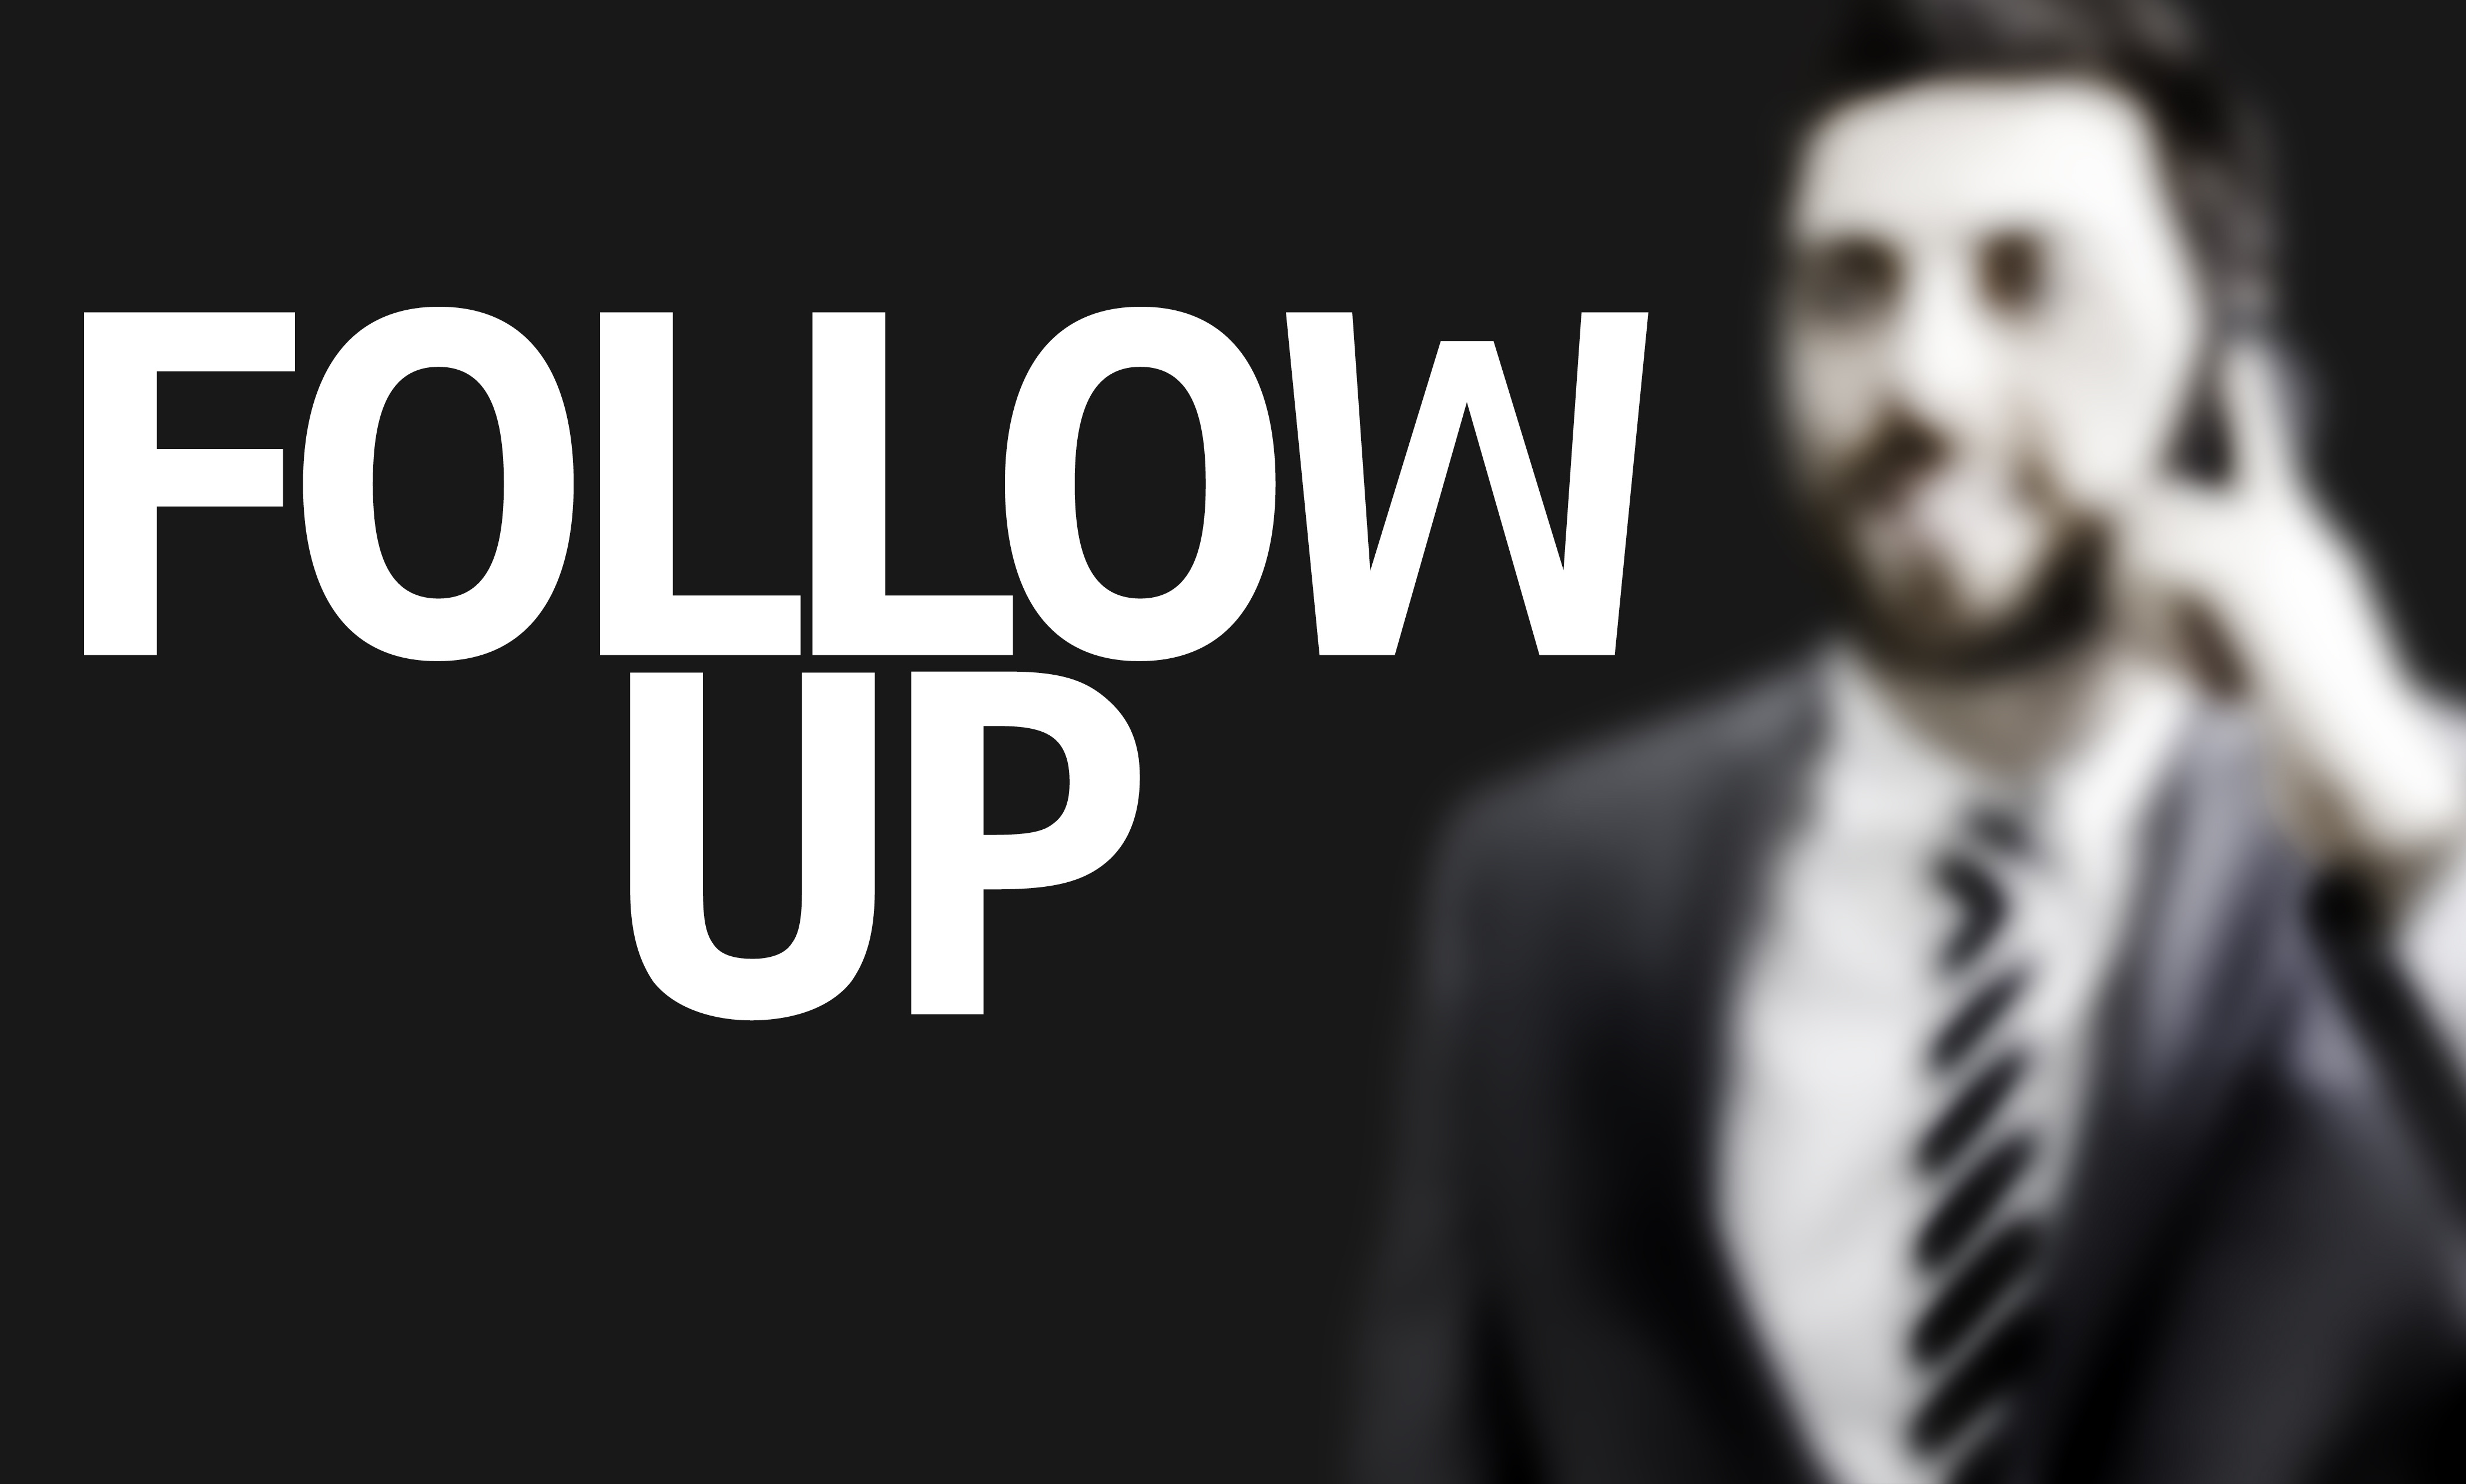 how to follow up law firm application